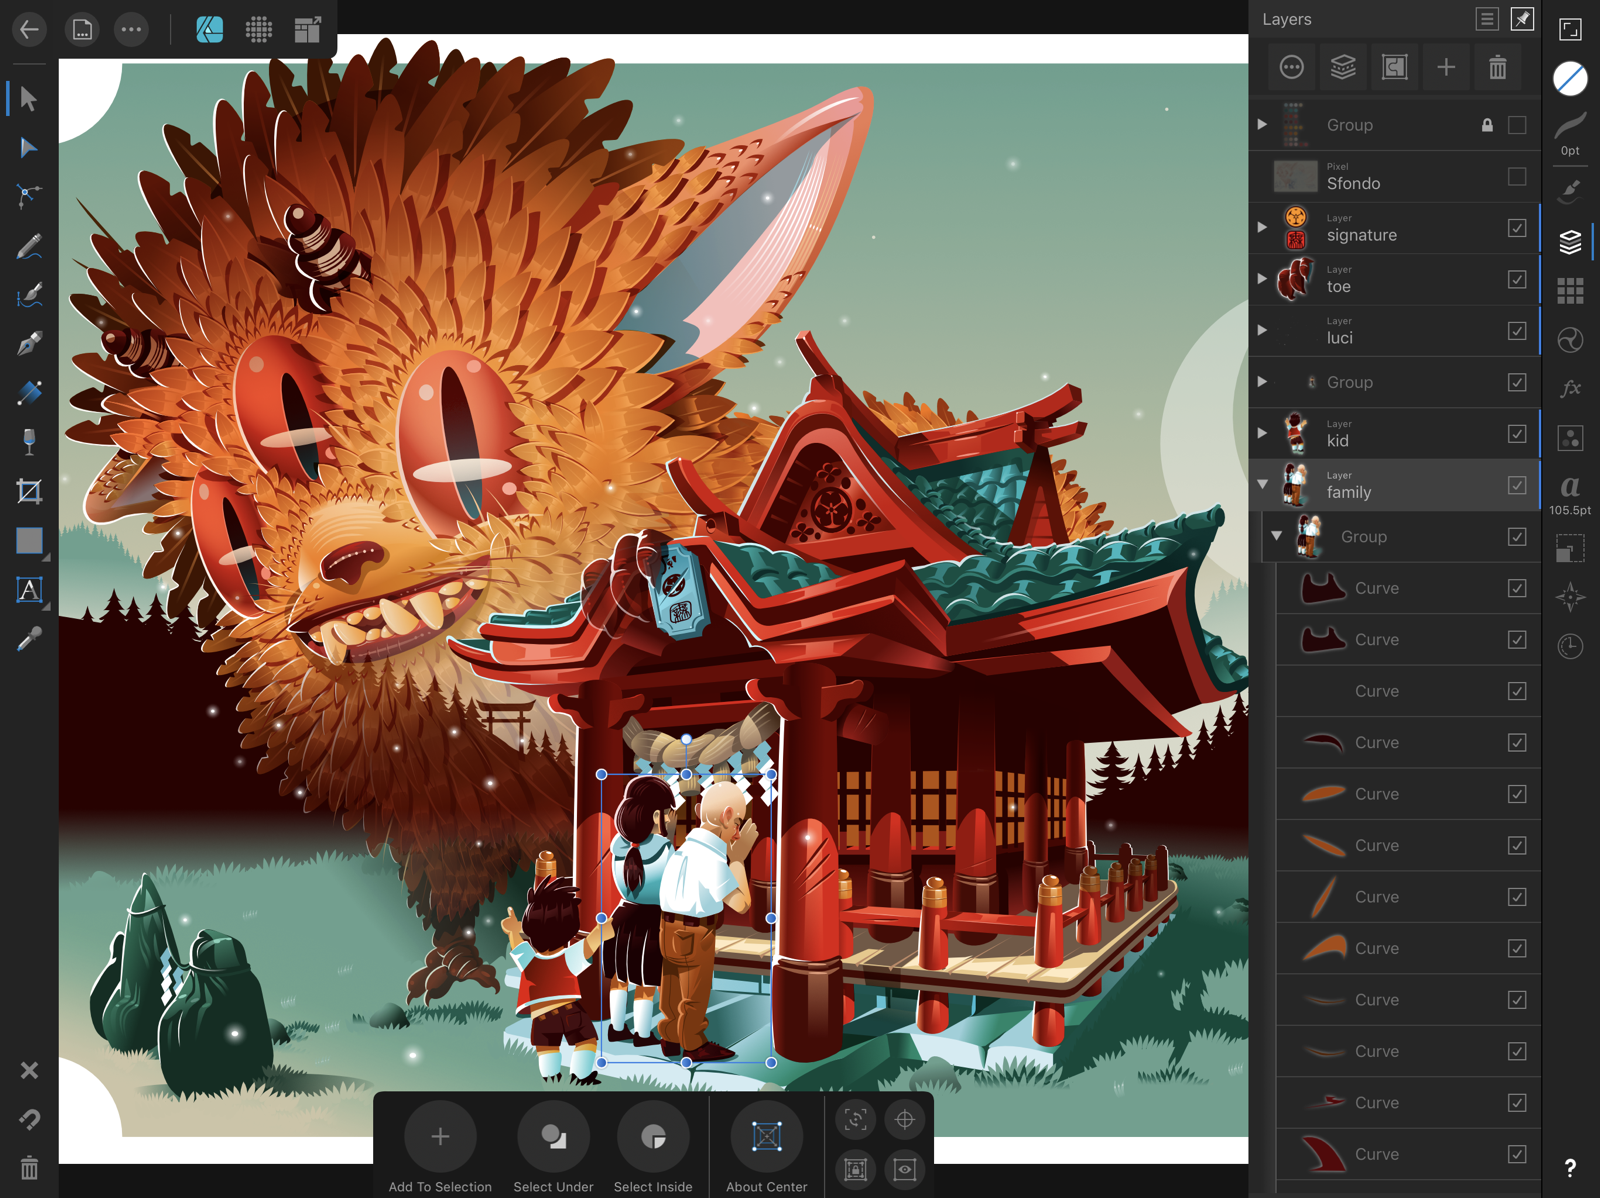 Affinity Designer example image with layers open